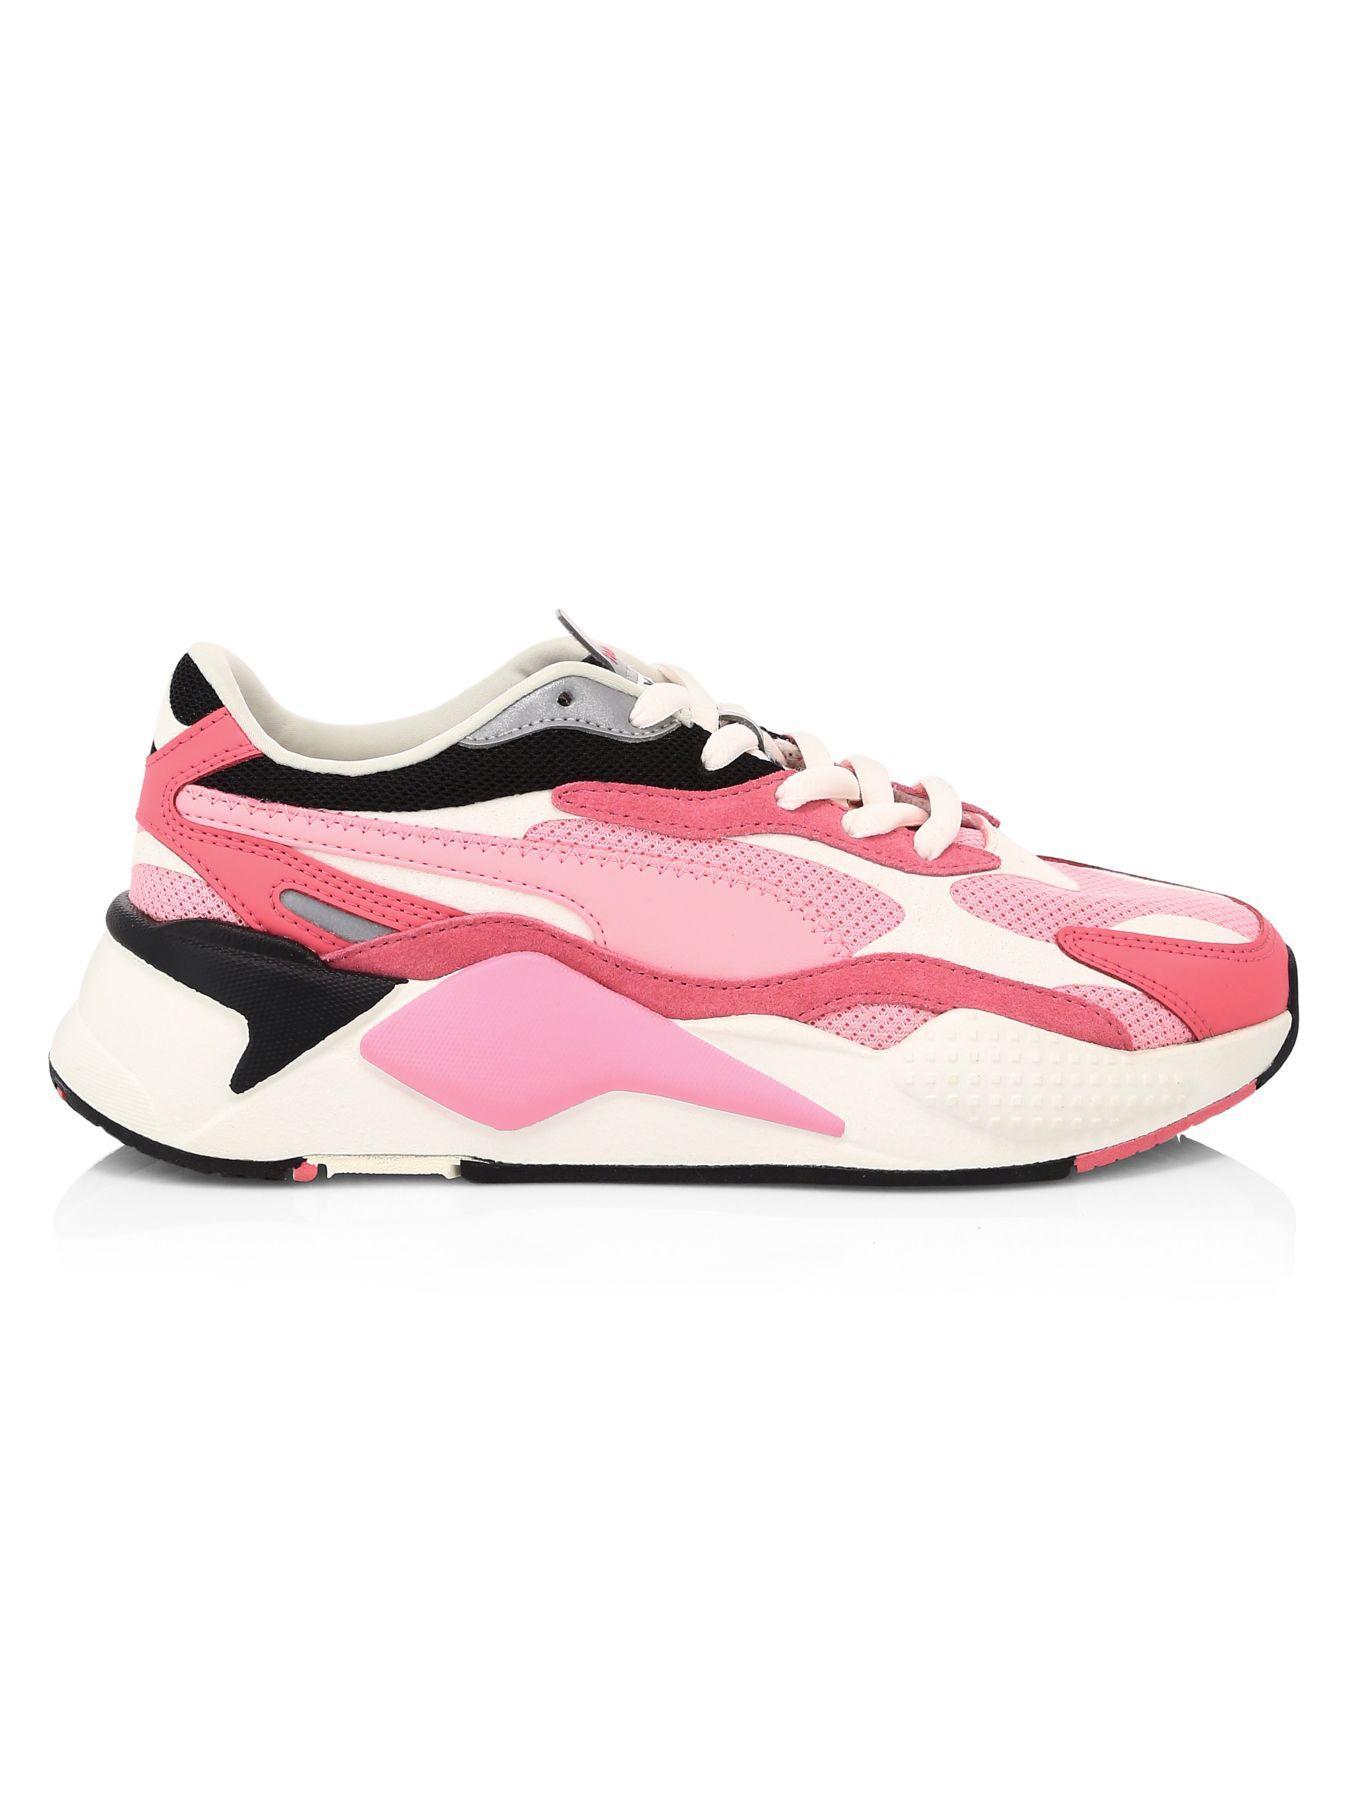 PUMA Leather Rs-x Cubed in Pink/Pink